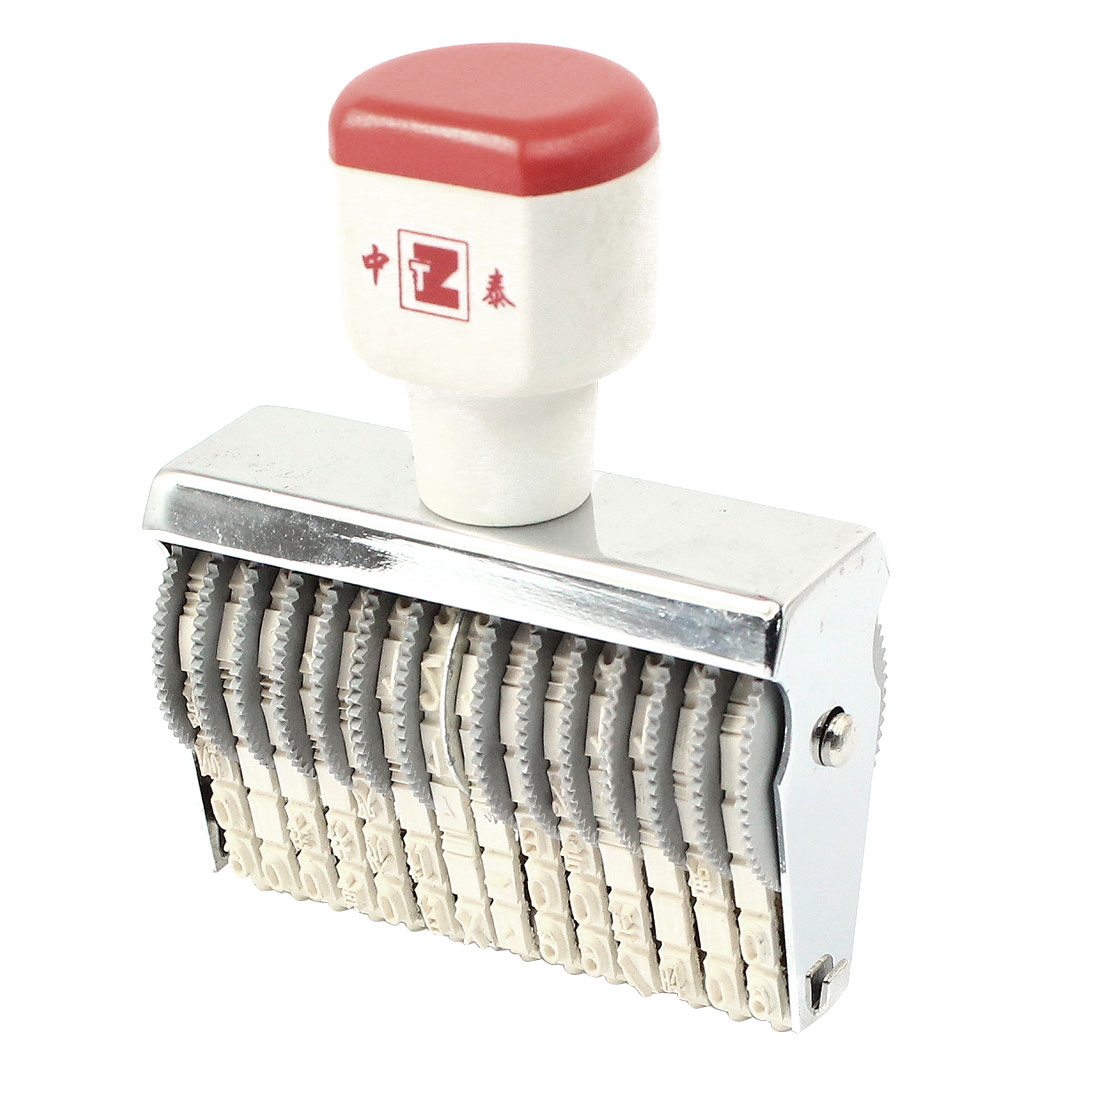 Price Unit Design 14 Digits Number Numbering Machine Roller Stamp Seal